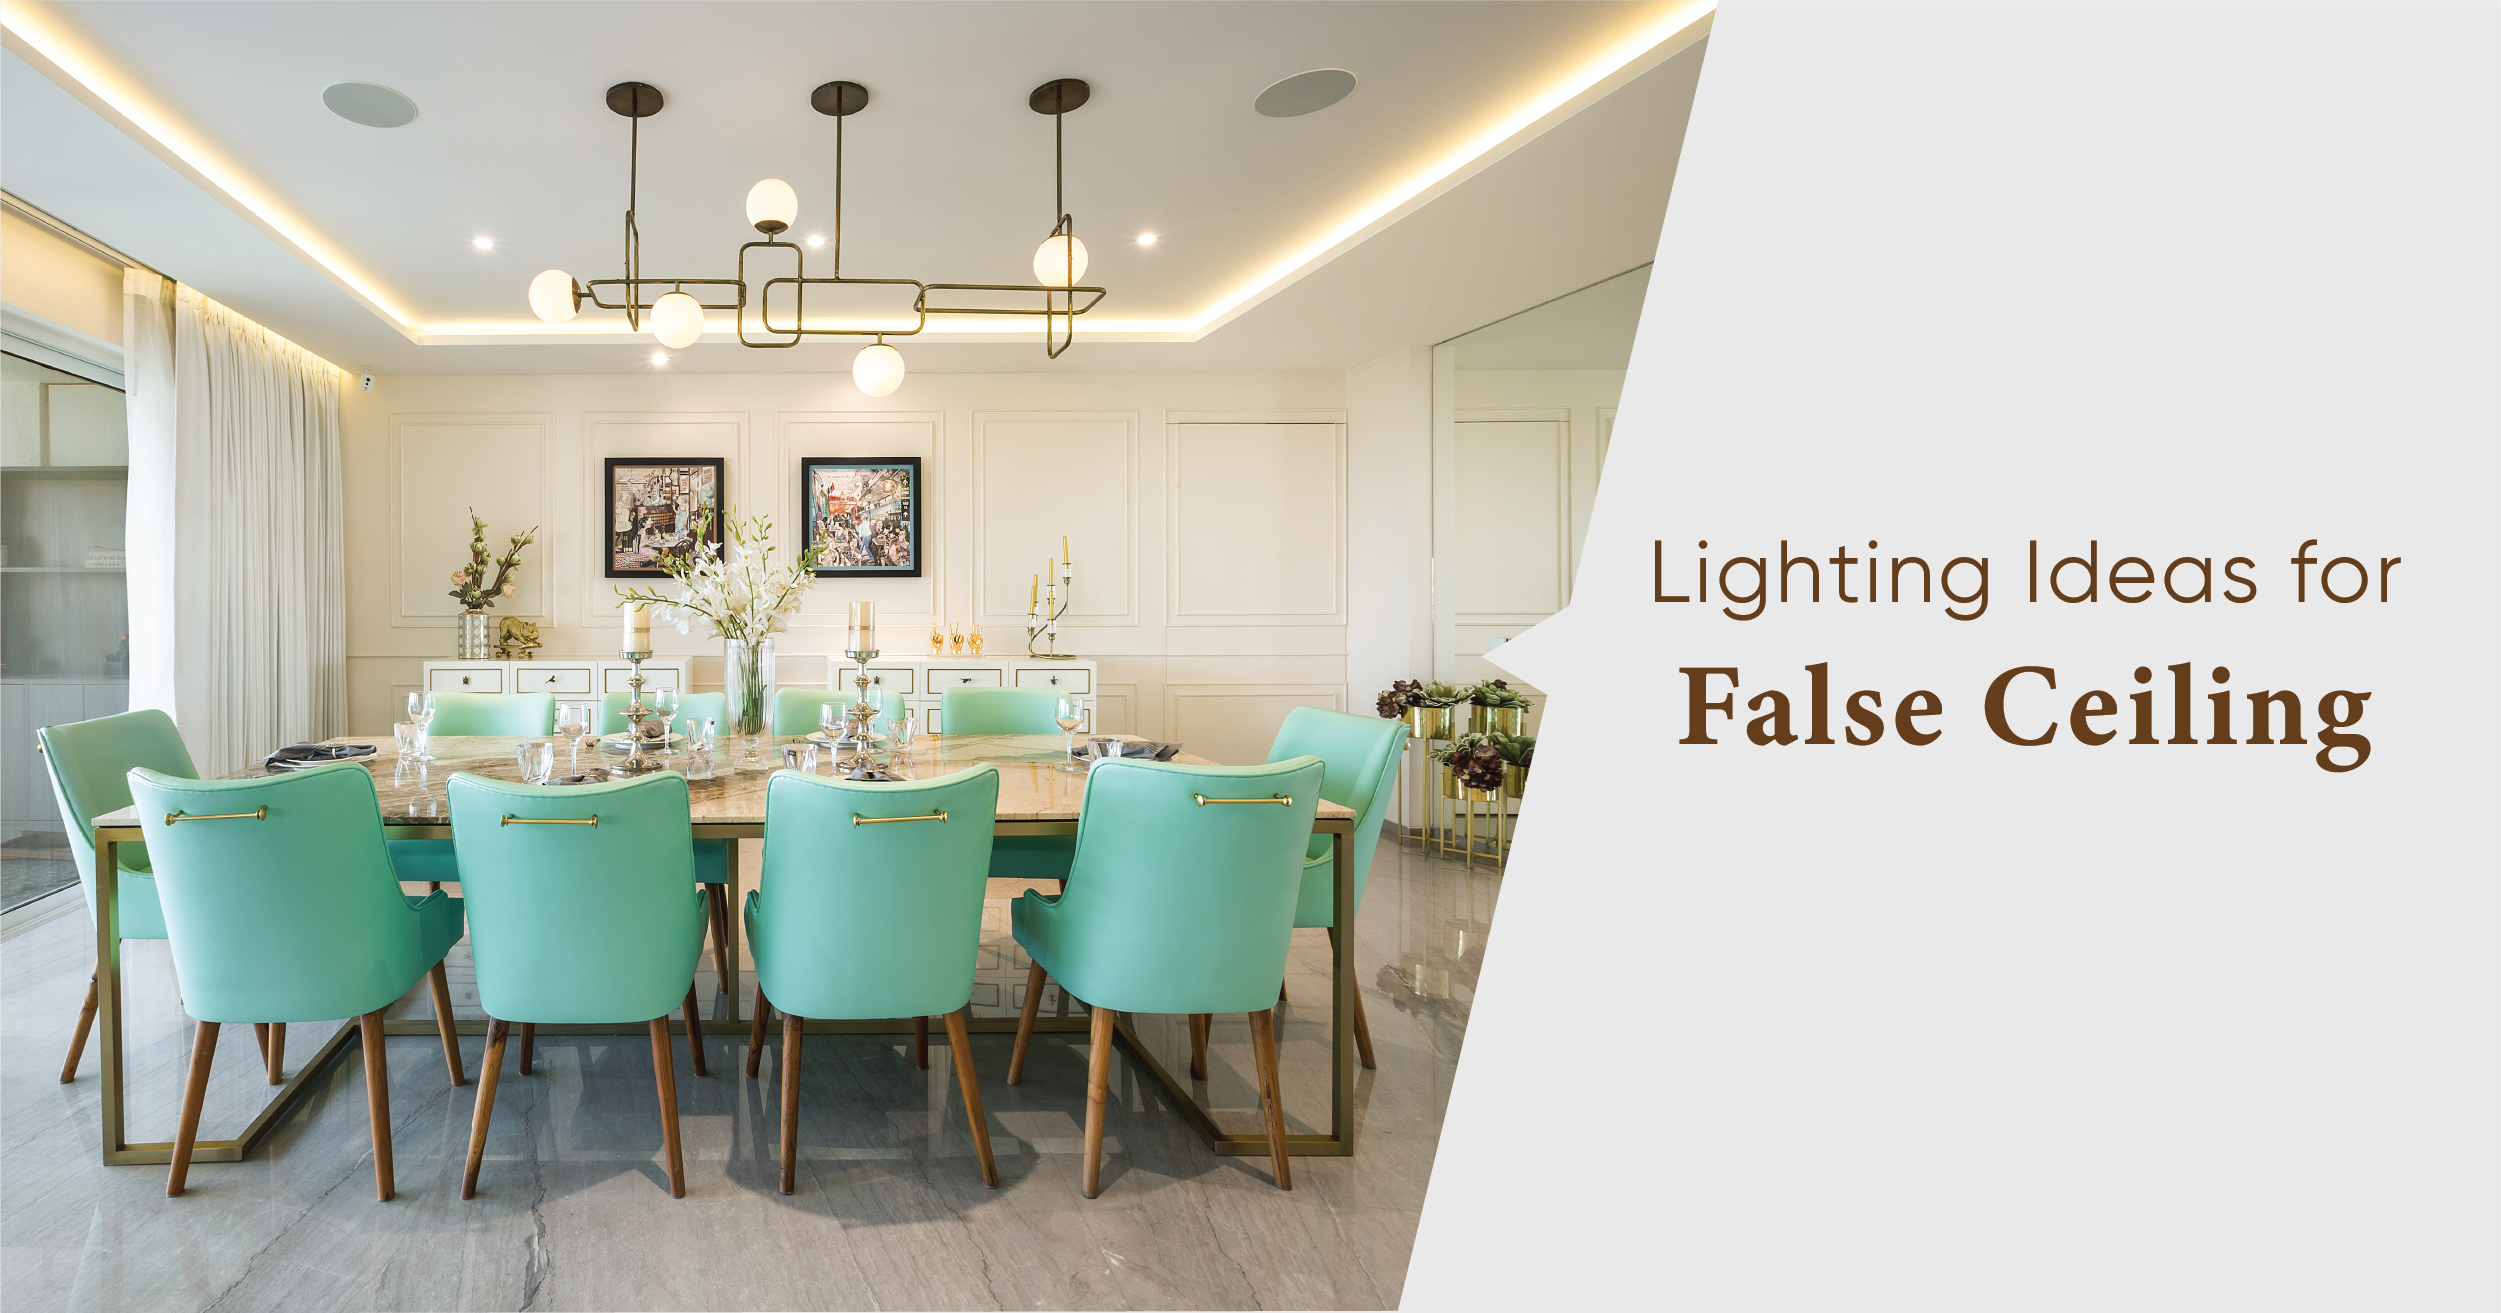 Everything You Need to Know About Ceiling lights (Expert Tips Inside)